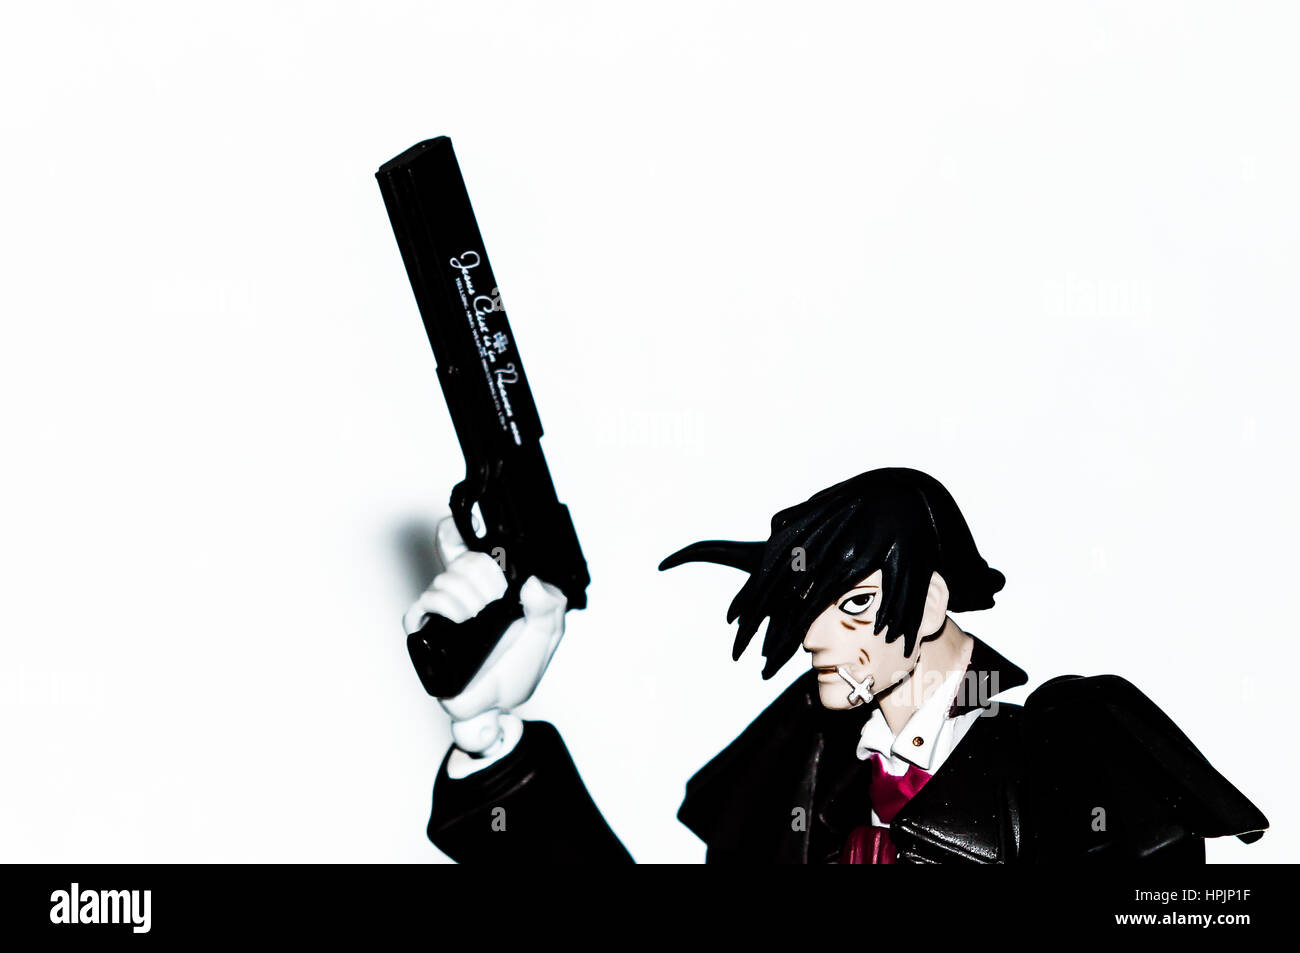 Alucard With His Gun Hellsing Stock Photo Alamy